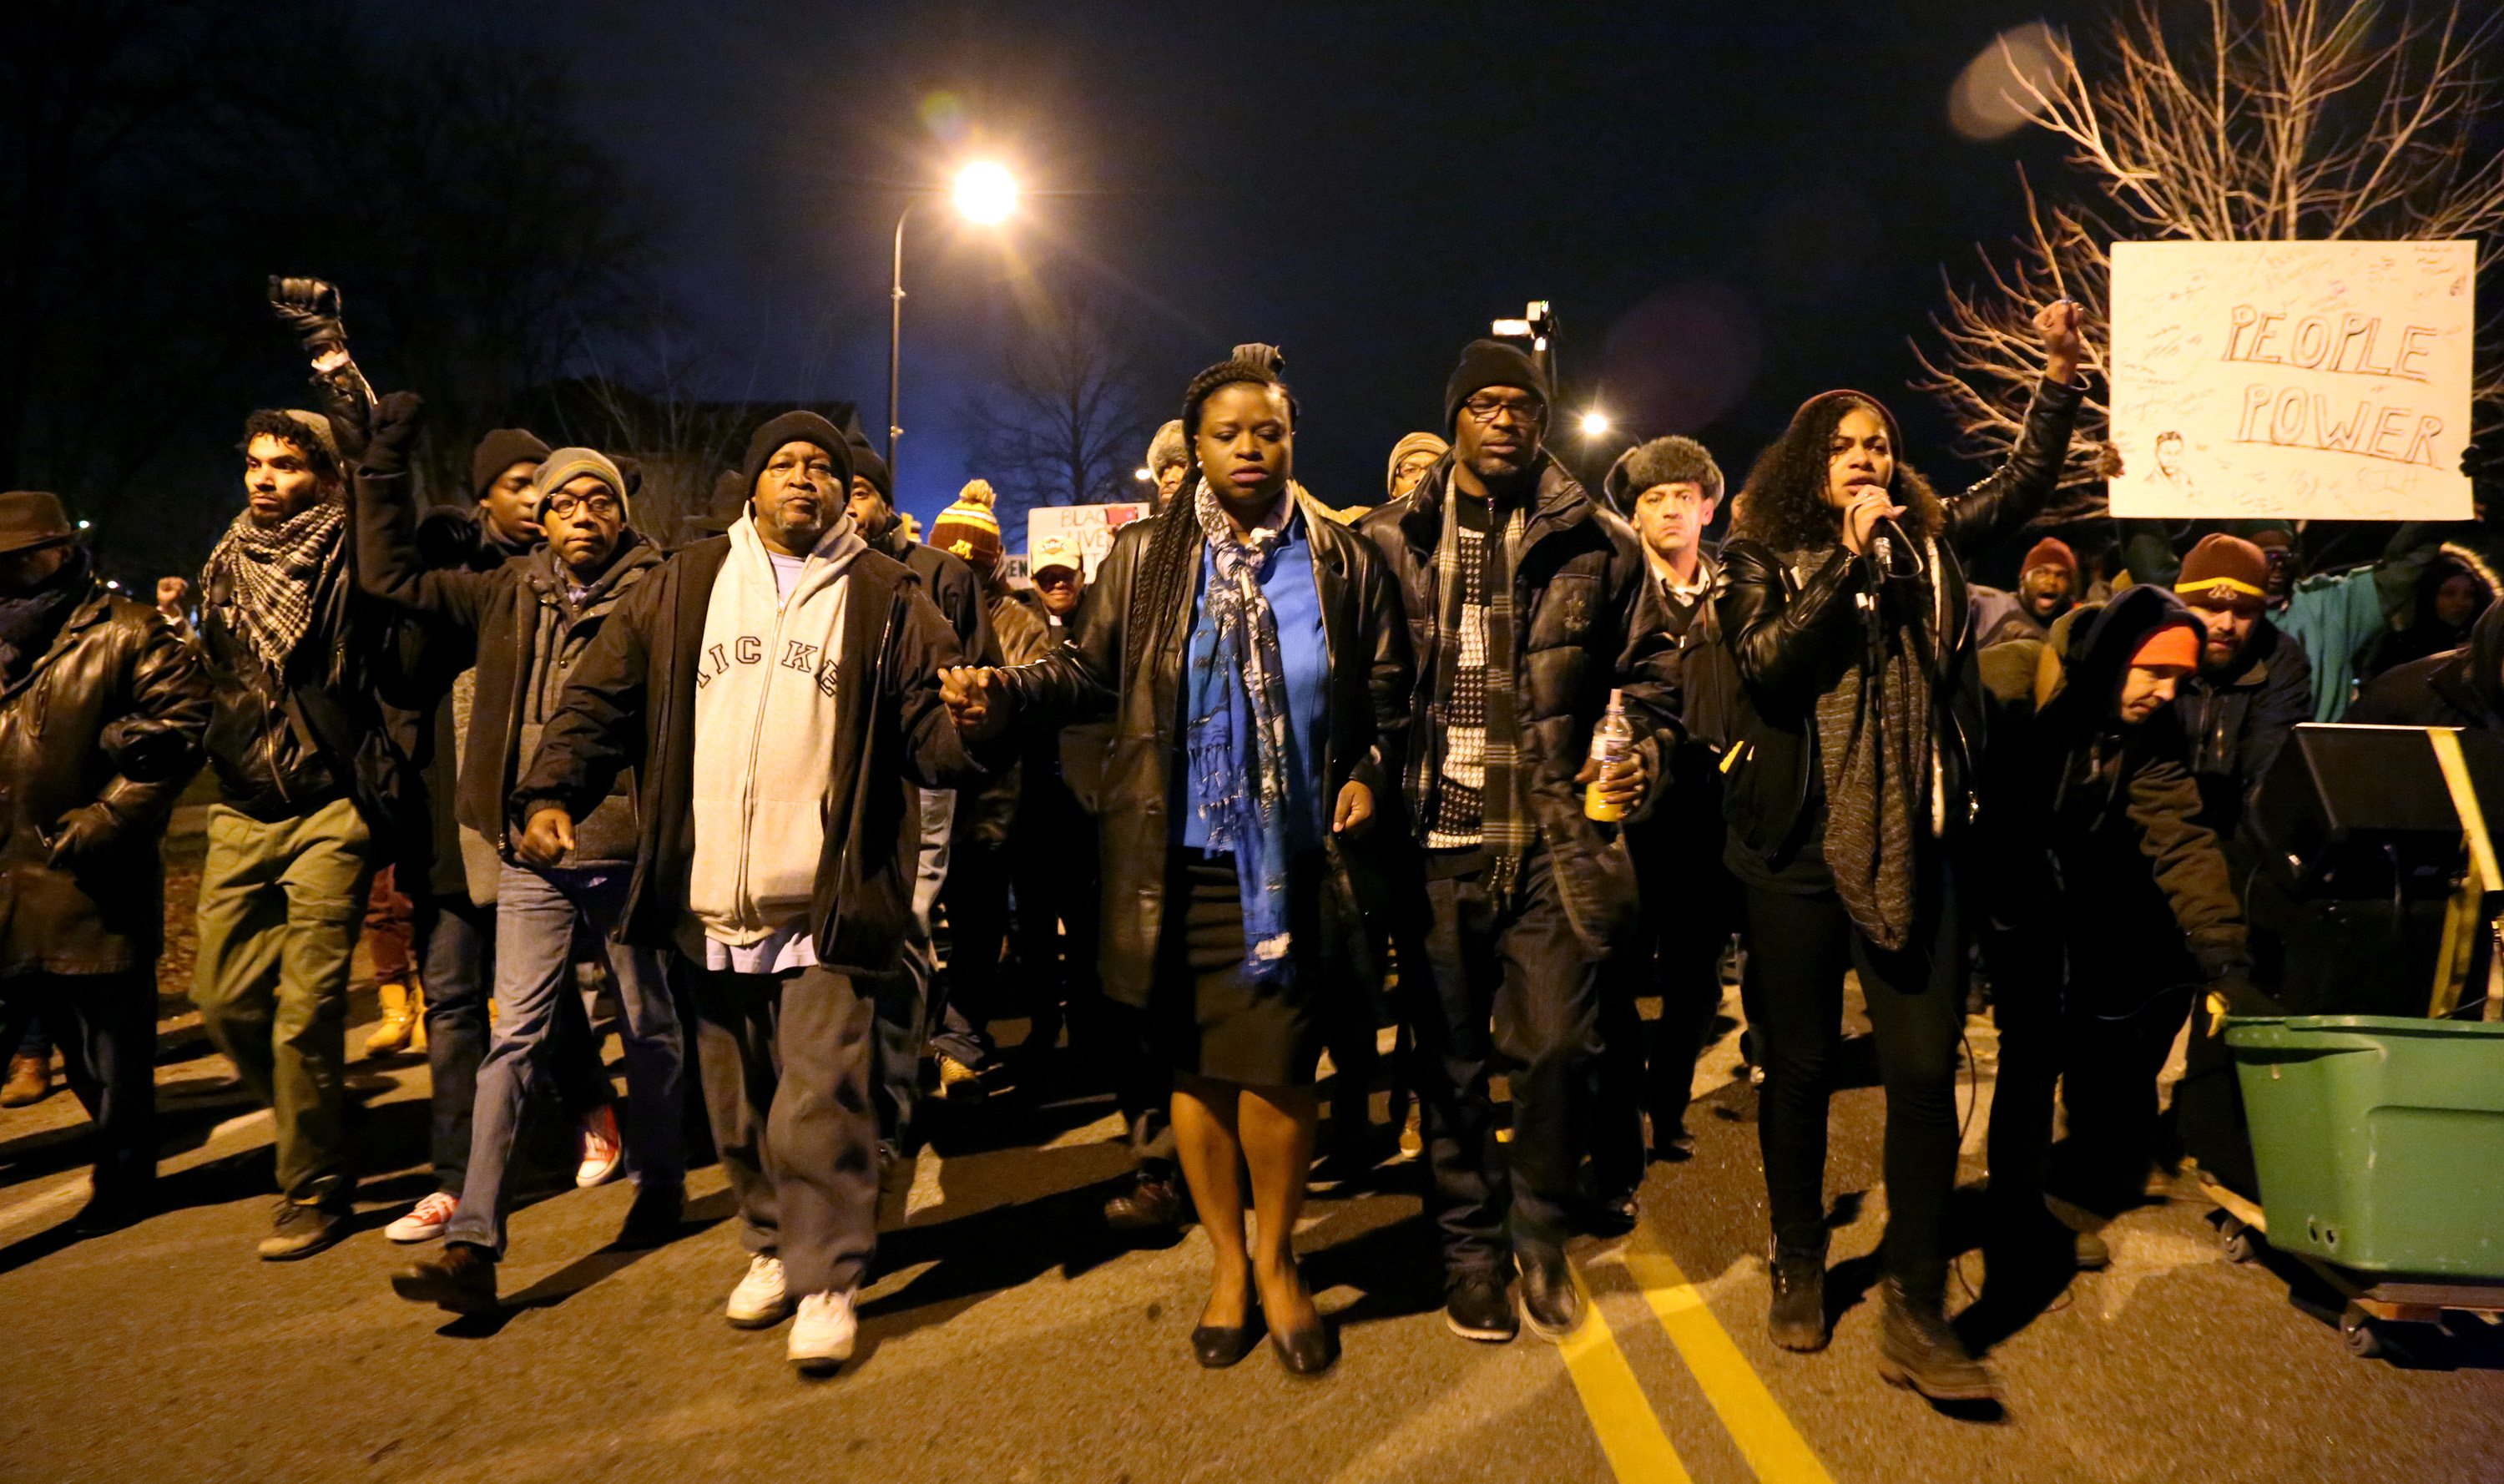 Demonstrators outside the Minneapolis Police Department's 4th Precinct split off and walk to the site where Jamar Clark was shot by police, on Friday, Nov. 20, 2015. (Kyndell Harkness/Minneapolis Star Tribune/TNS) ORG XMIT: 1176971